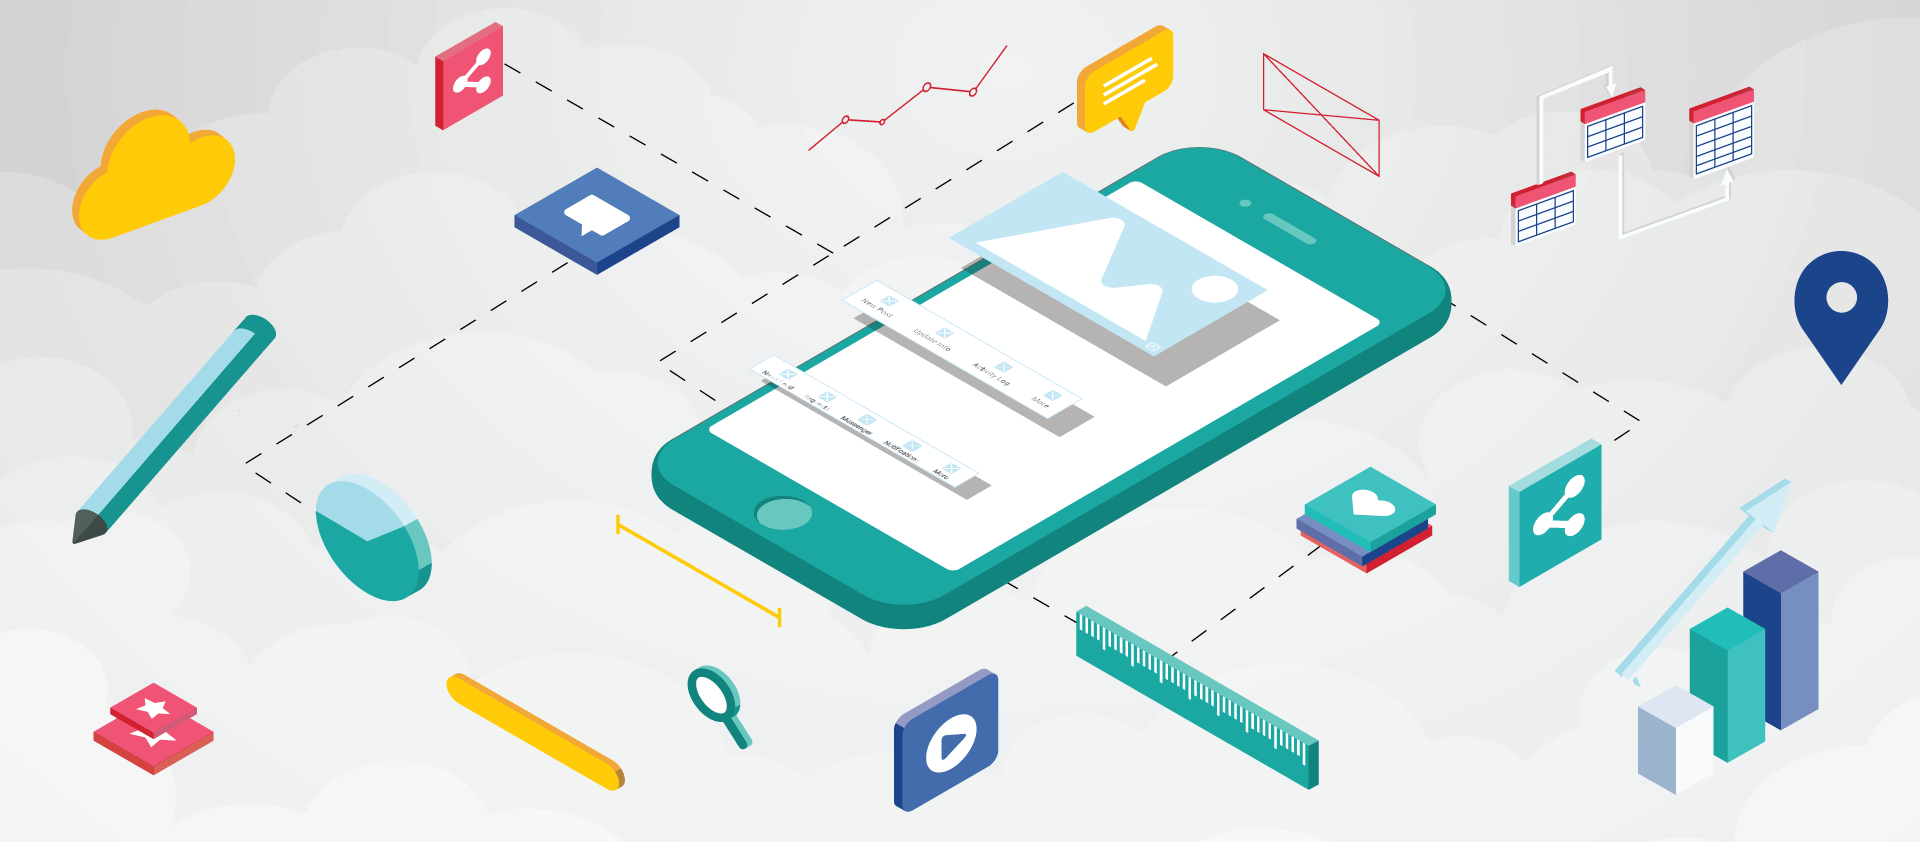 8 Useful Resource List for Mobile UX Design